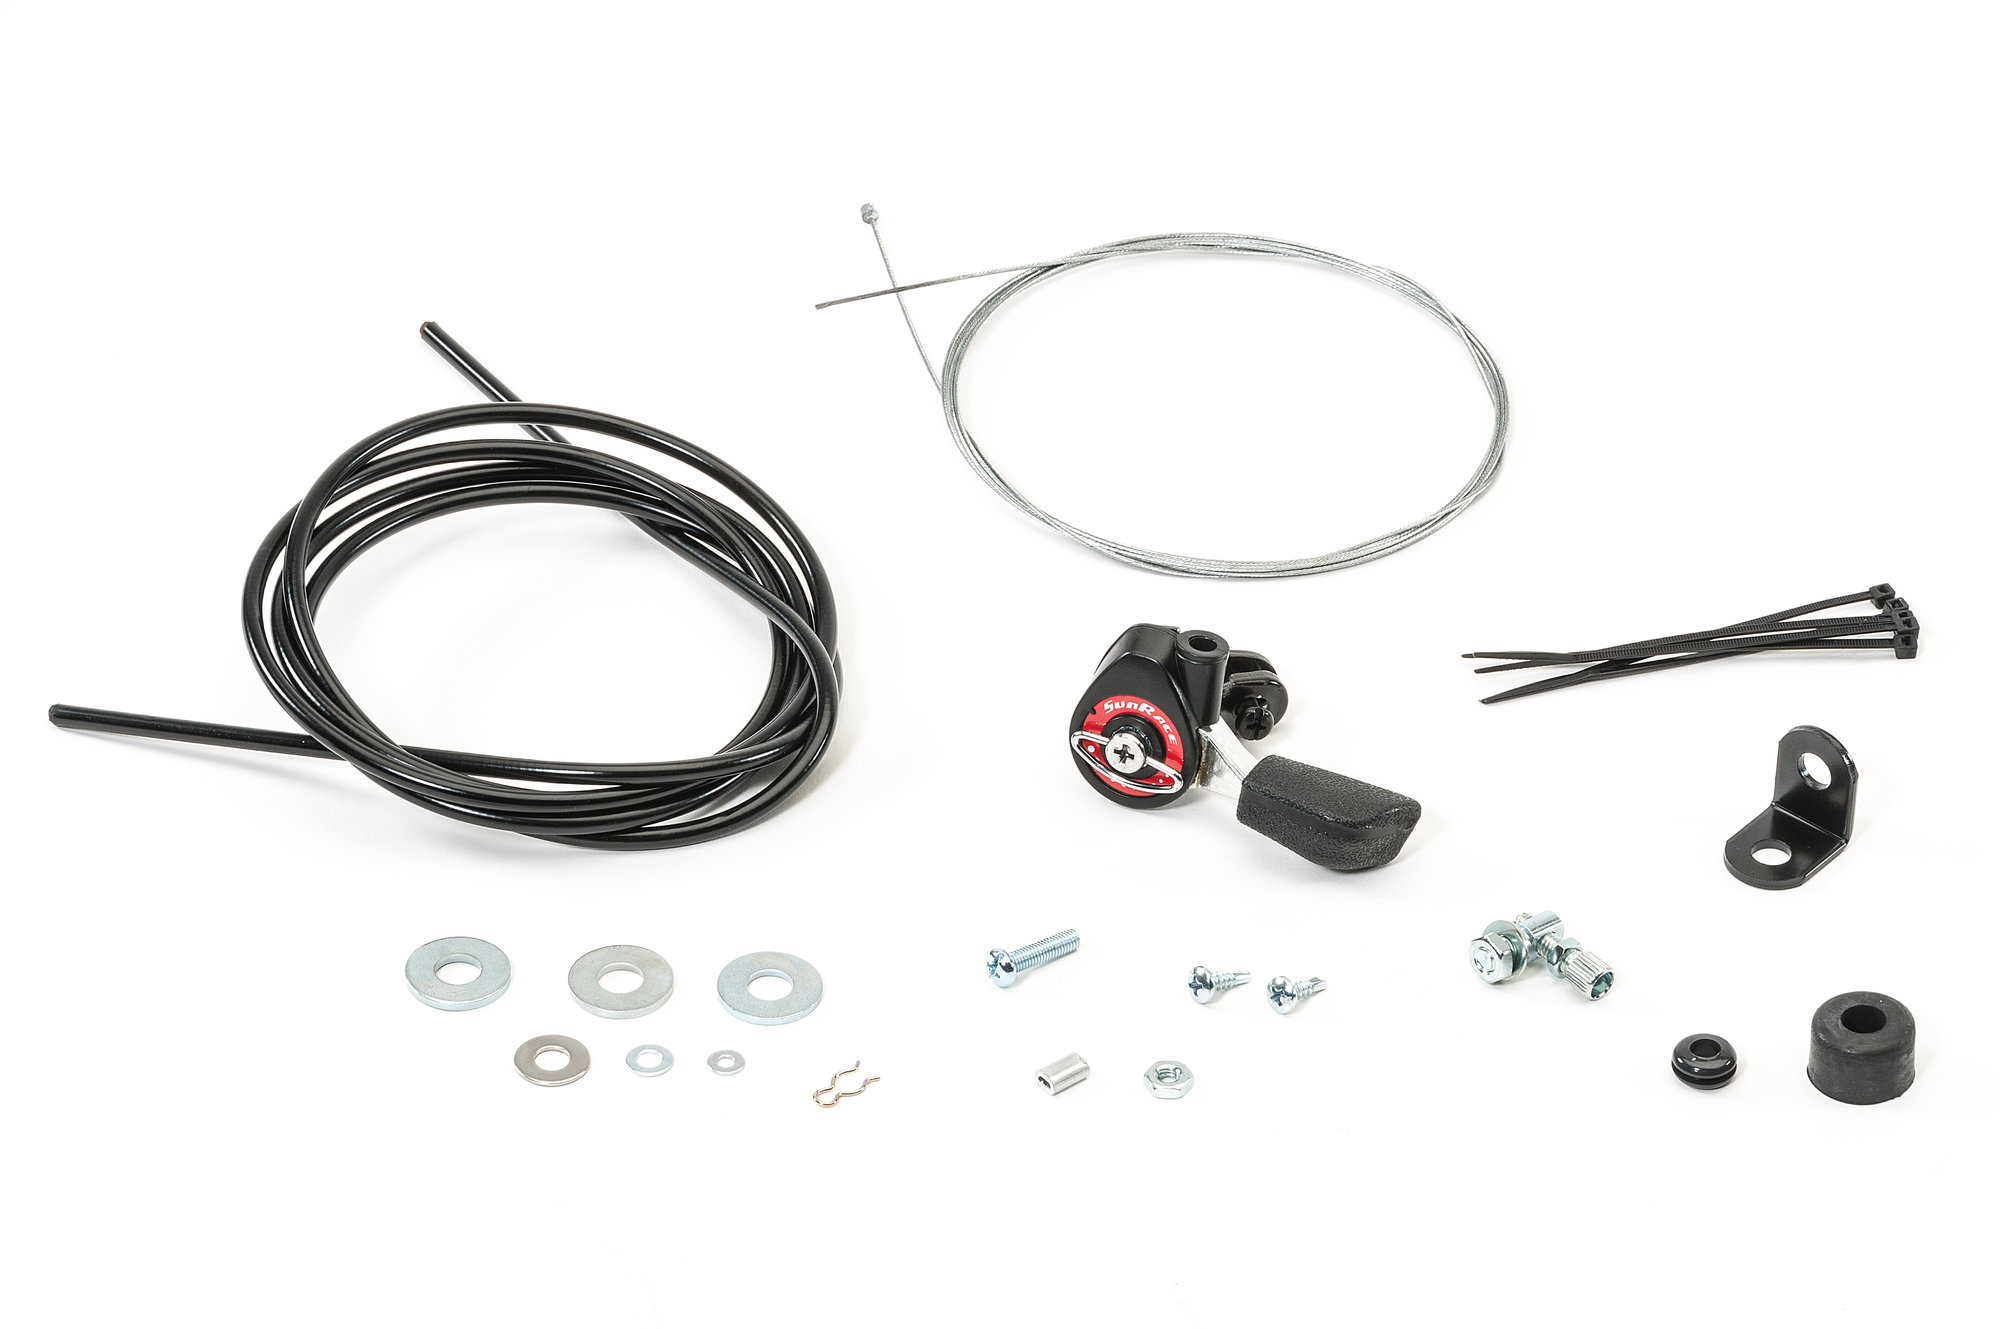 Teraflex 4870400 Hand Throttle Kit for 87-06 Jeep Wrangler